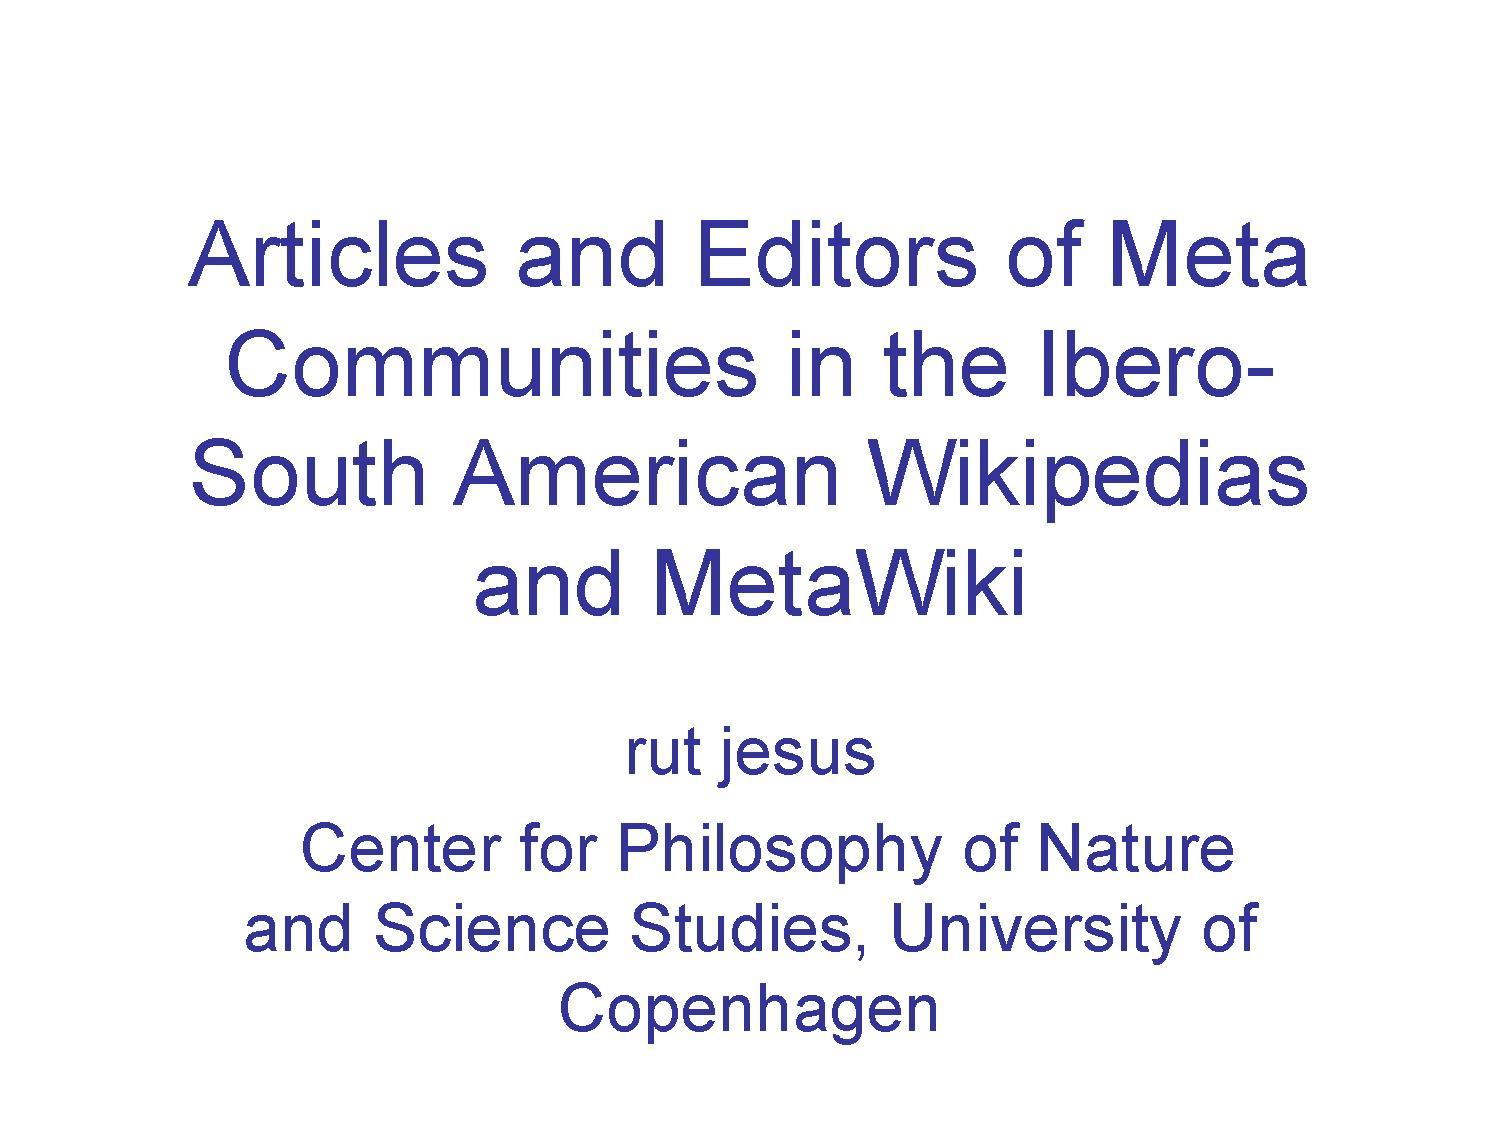 Rut Jesus - Wikimania 2009 - Articles and Authors of Meta Communities.pdf